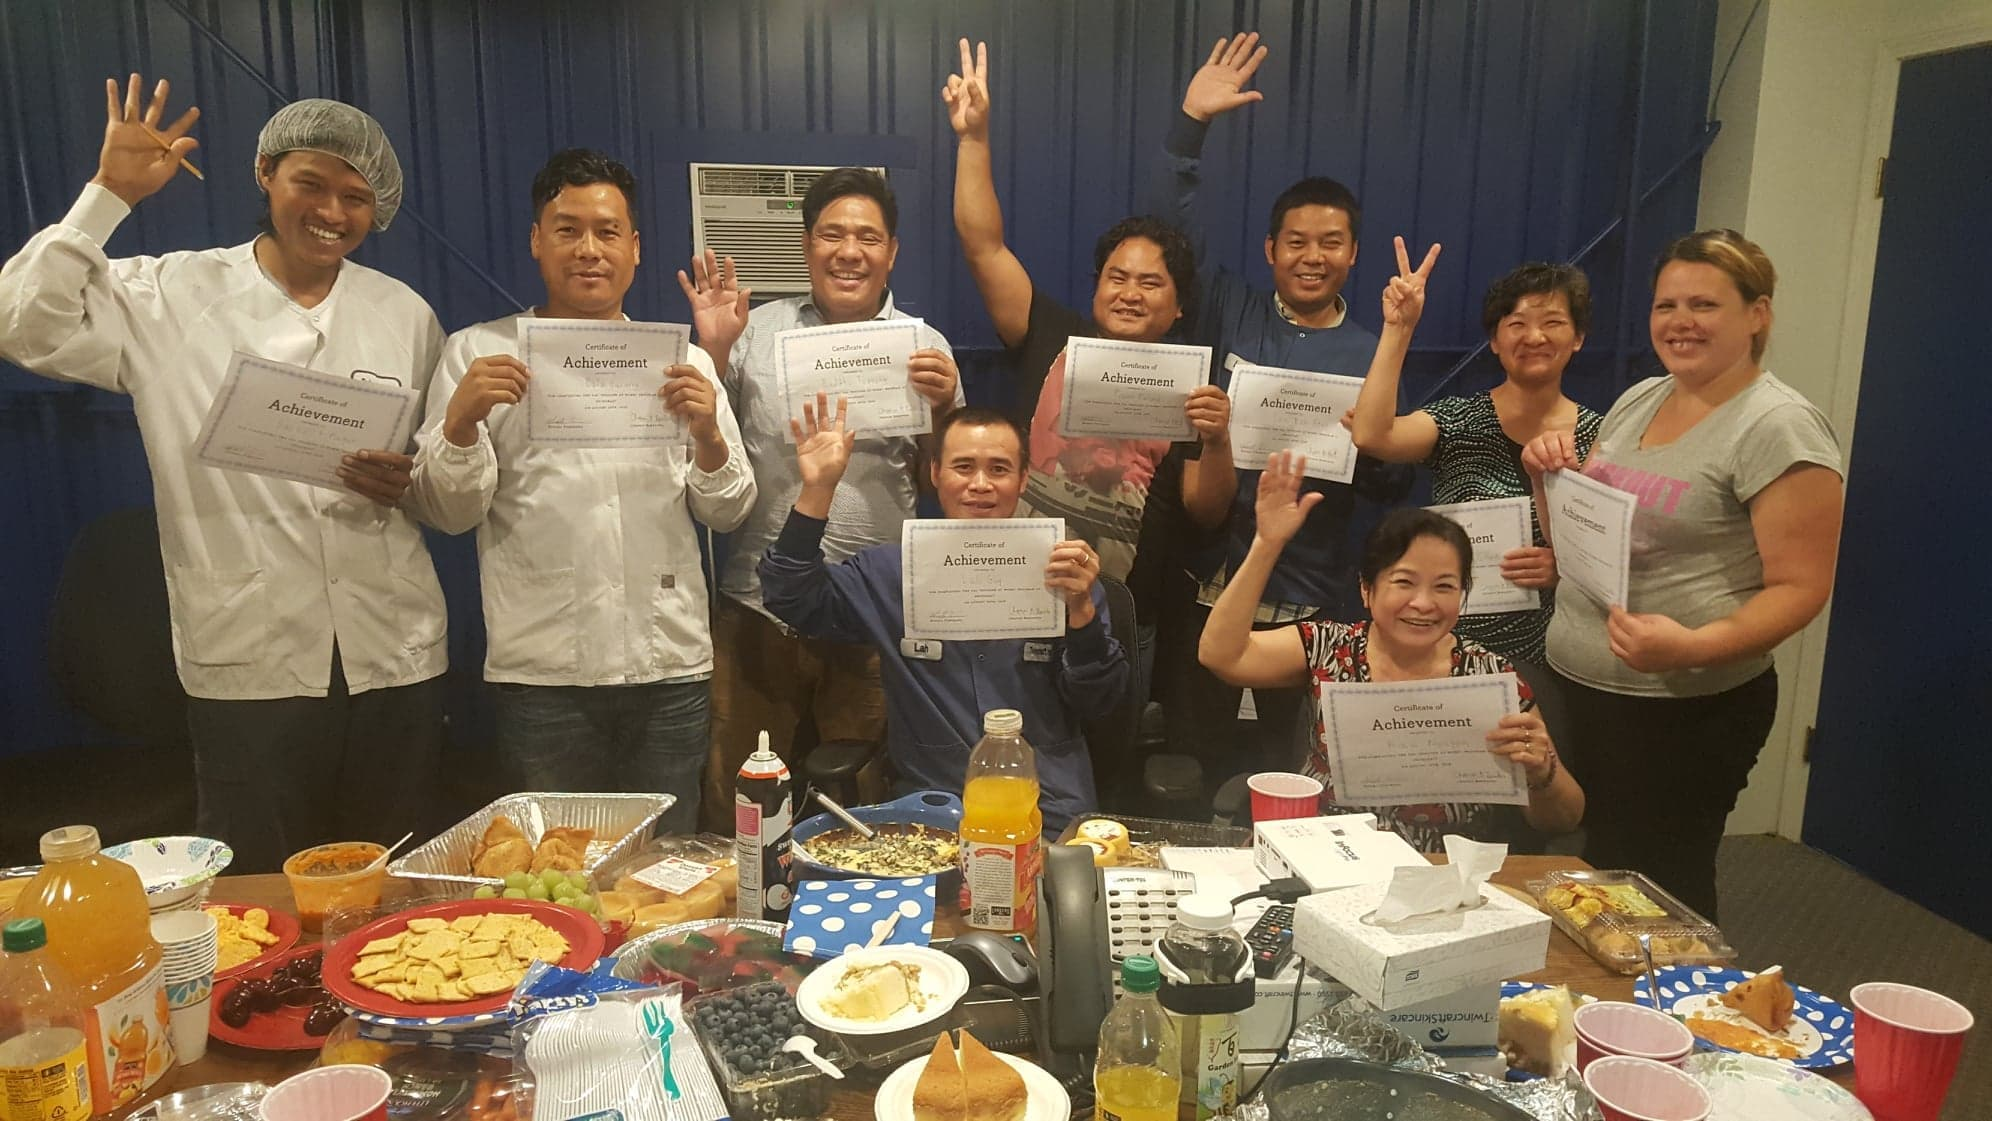 Twincraft New American employees with Certificates of Achievement for English as a Second Language Course